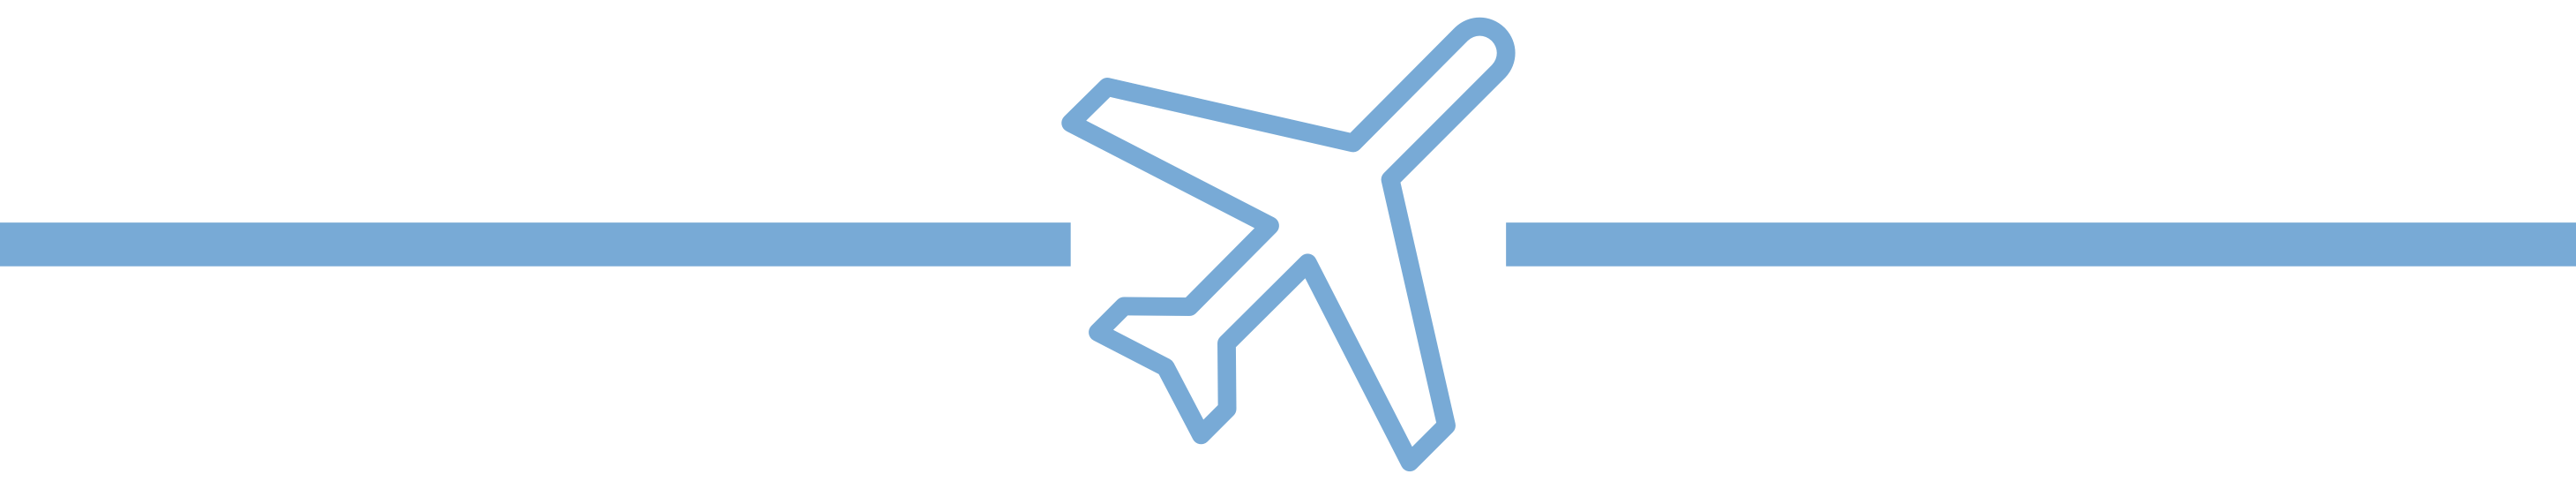 flyingfear.net logo